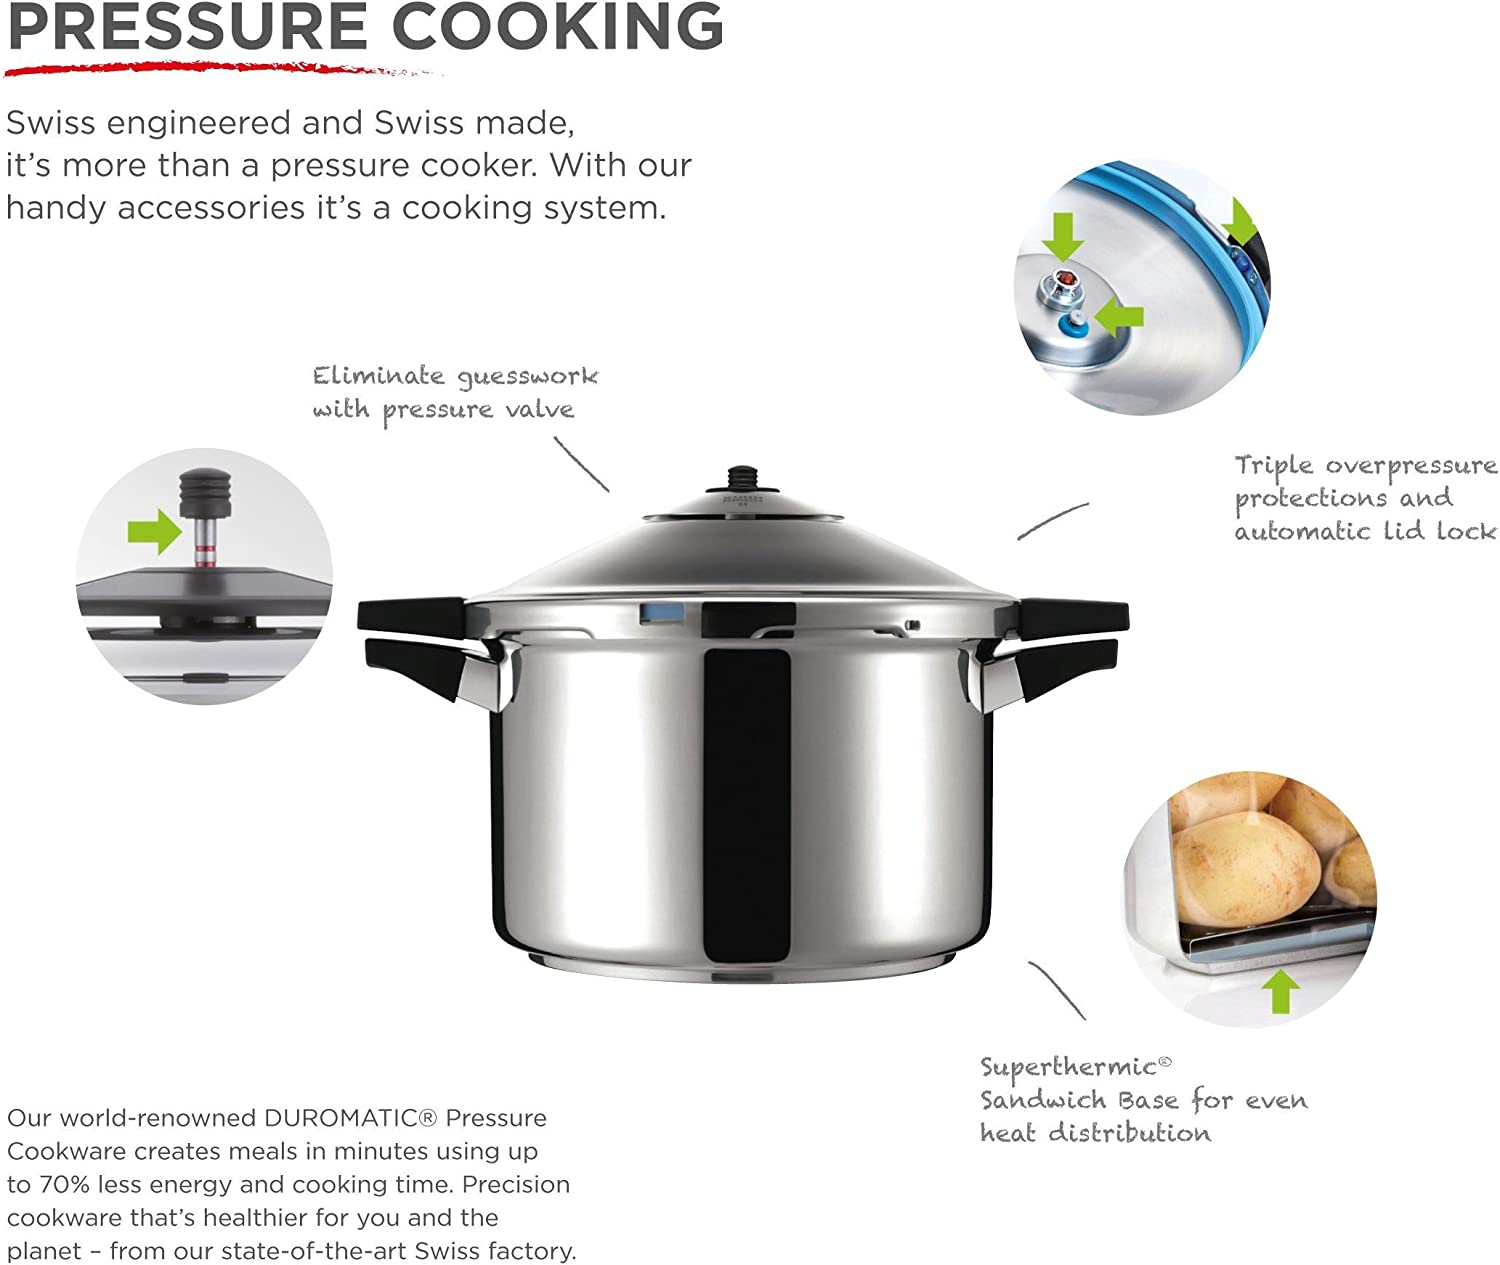 Kuhn Rikon Duromatic Hotel Stainless Steel Pressure Cooker with Side Grips, 12 Litre 28 cm